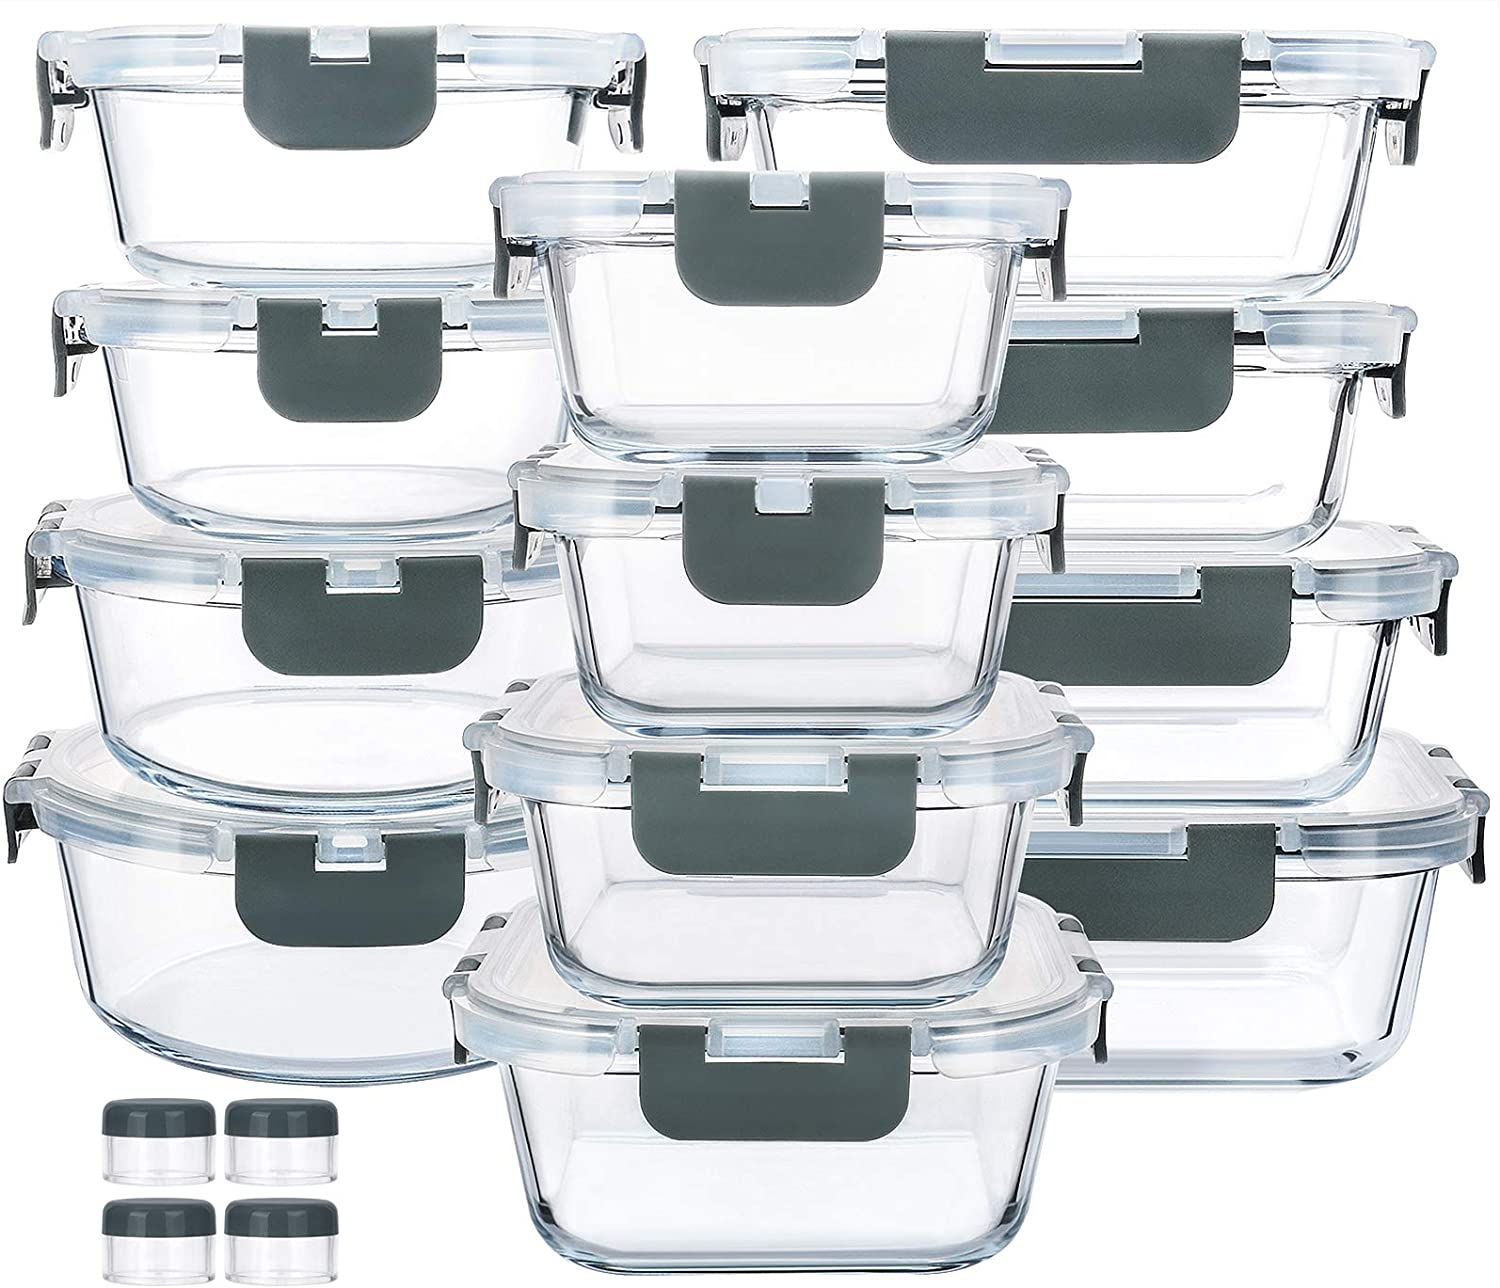 12-Piece Glass Food Storage Containers with Upgraded Snap Locking Lids,Glass Meal Prep Containers Set - Airtight Lunch Containers, Microwave, Oven, Freezer and Dishwasher